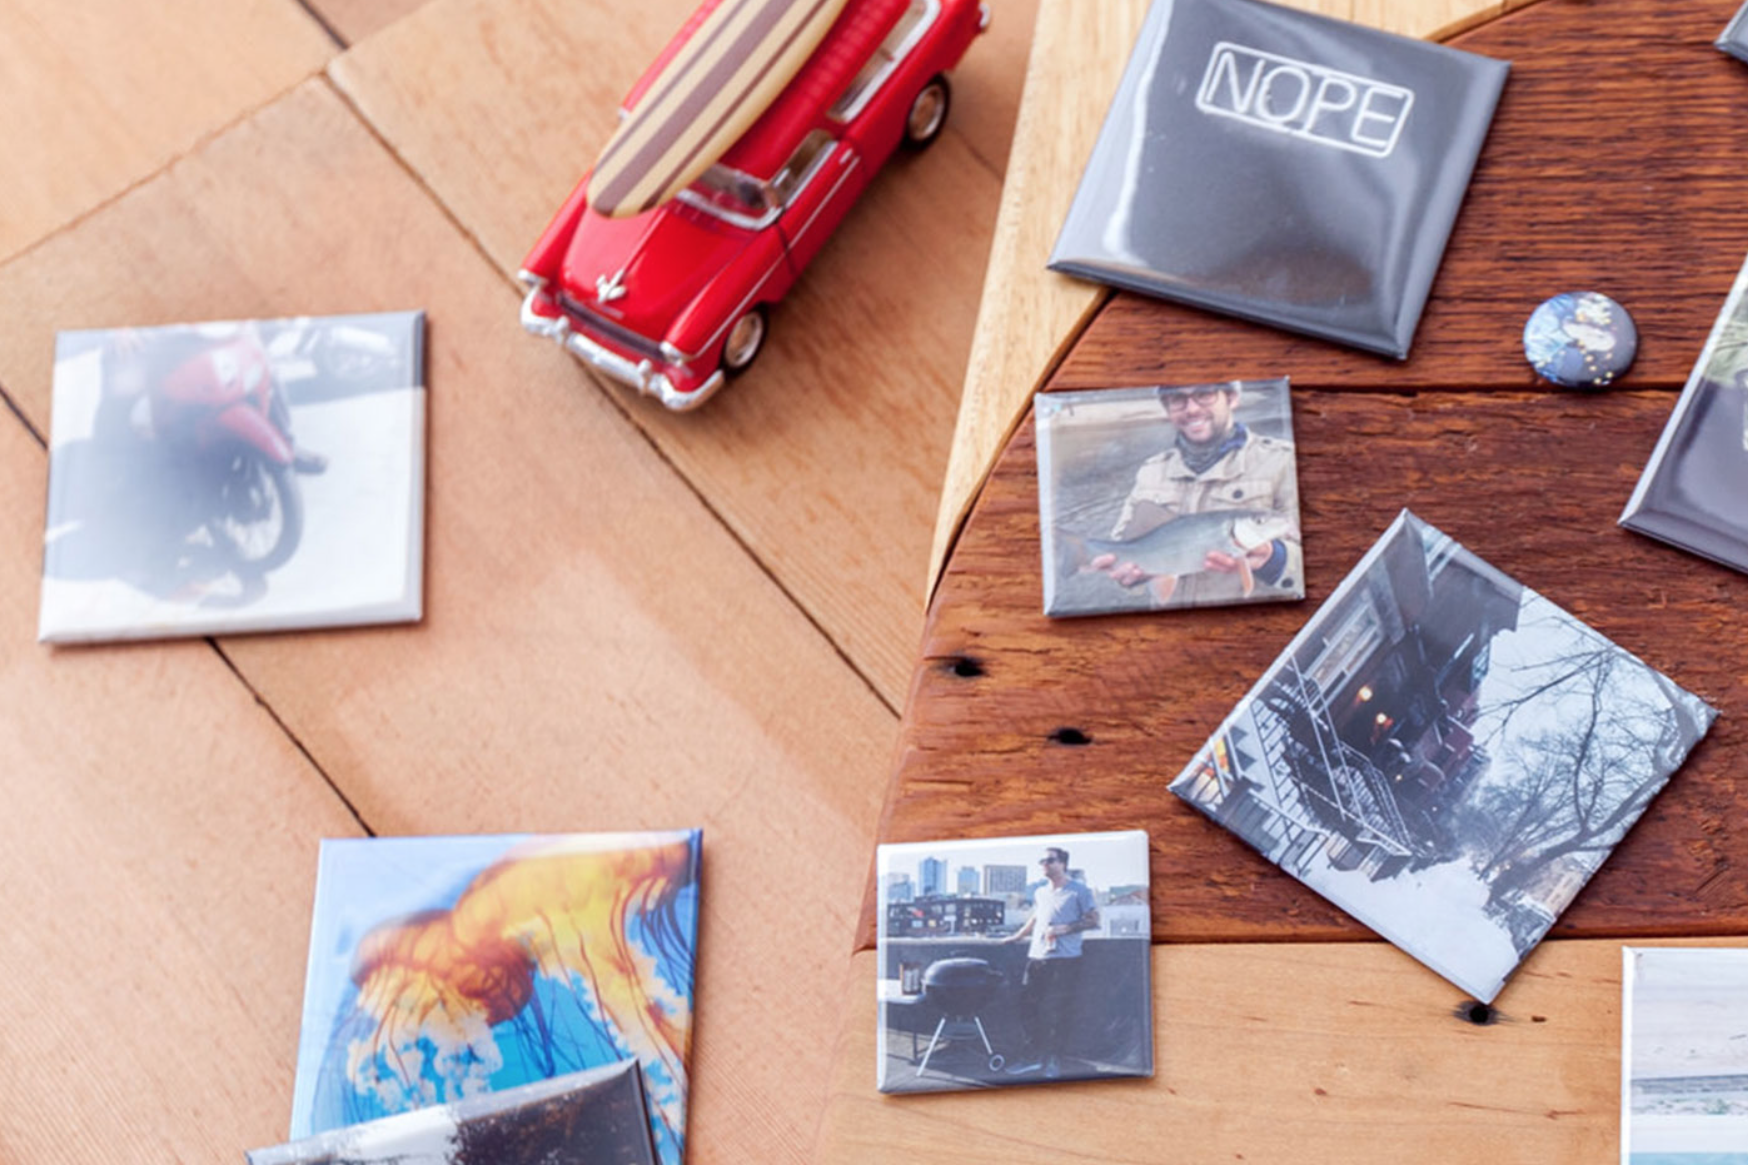 Project B: Square magnets (photo by Social Print Studio)